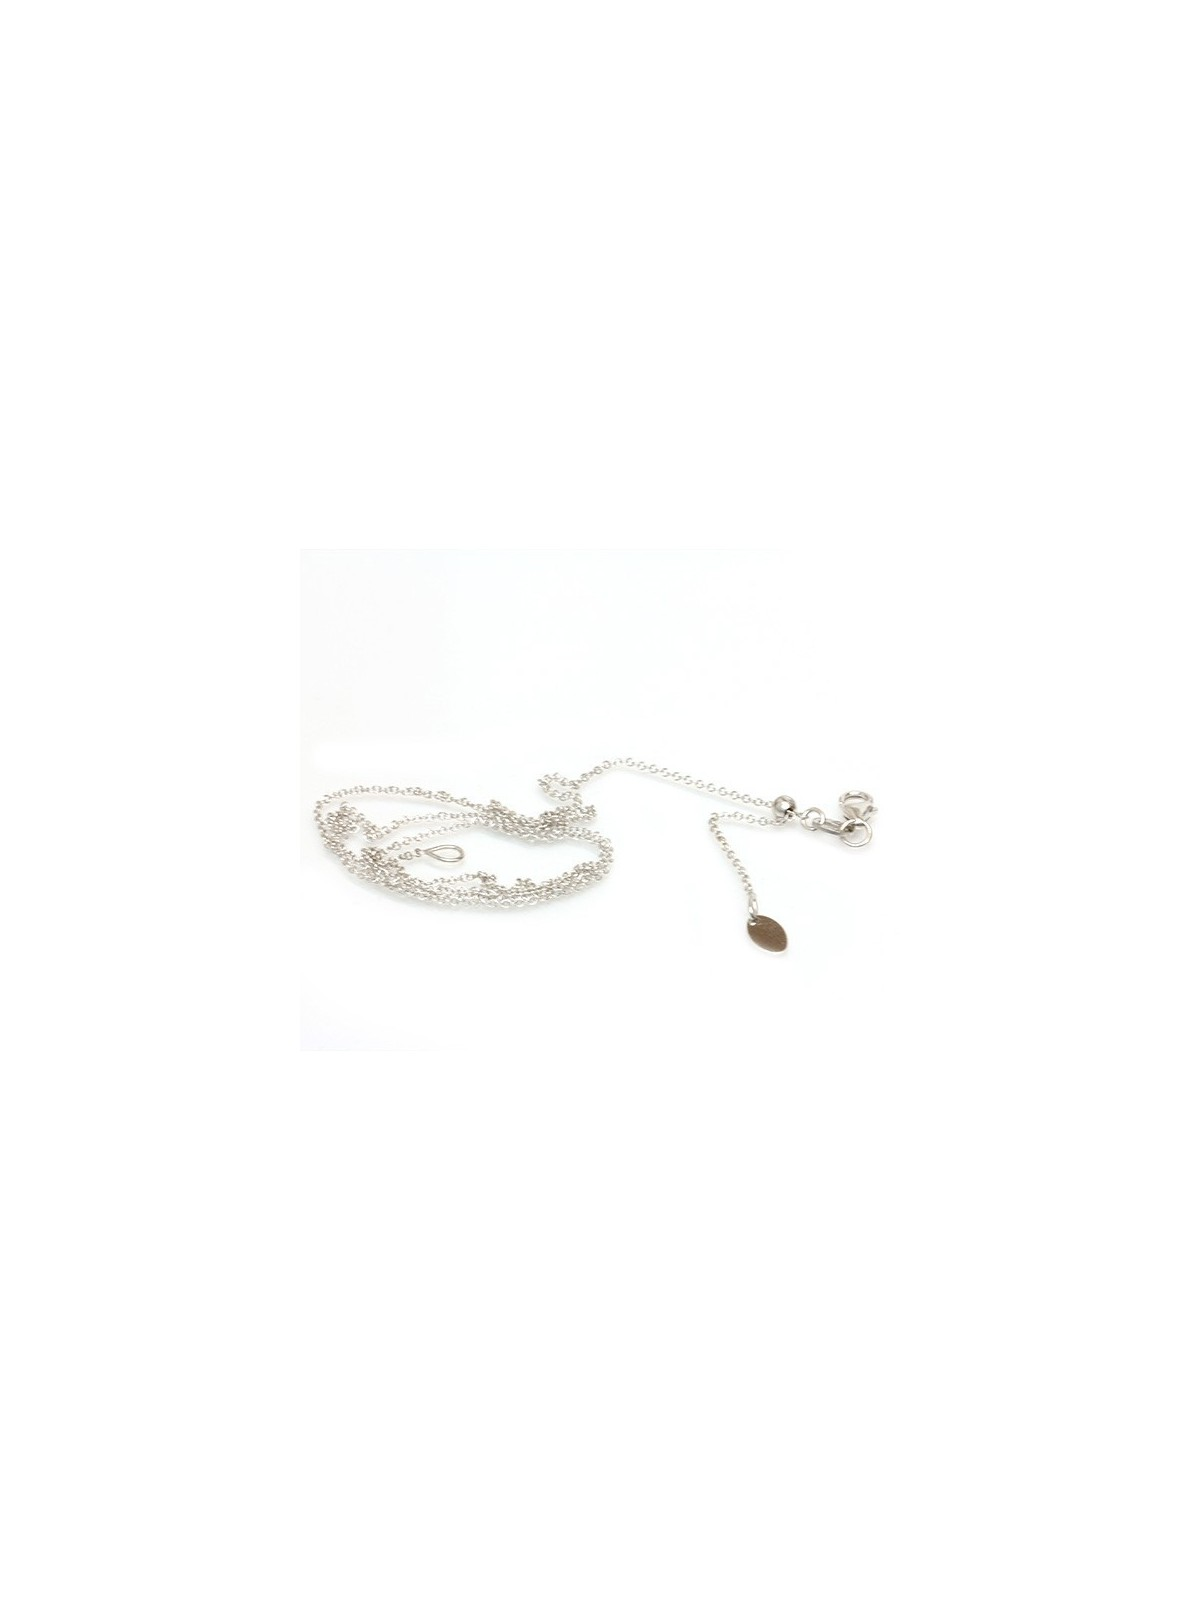 Chaine ajustable Or 14 carats Moea Perles - 3